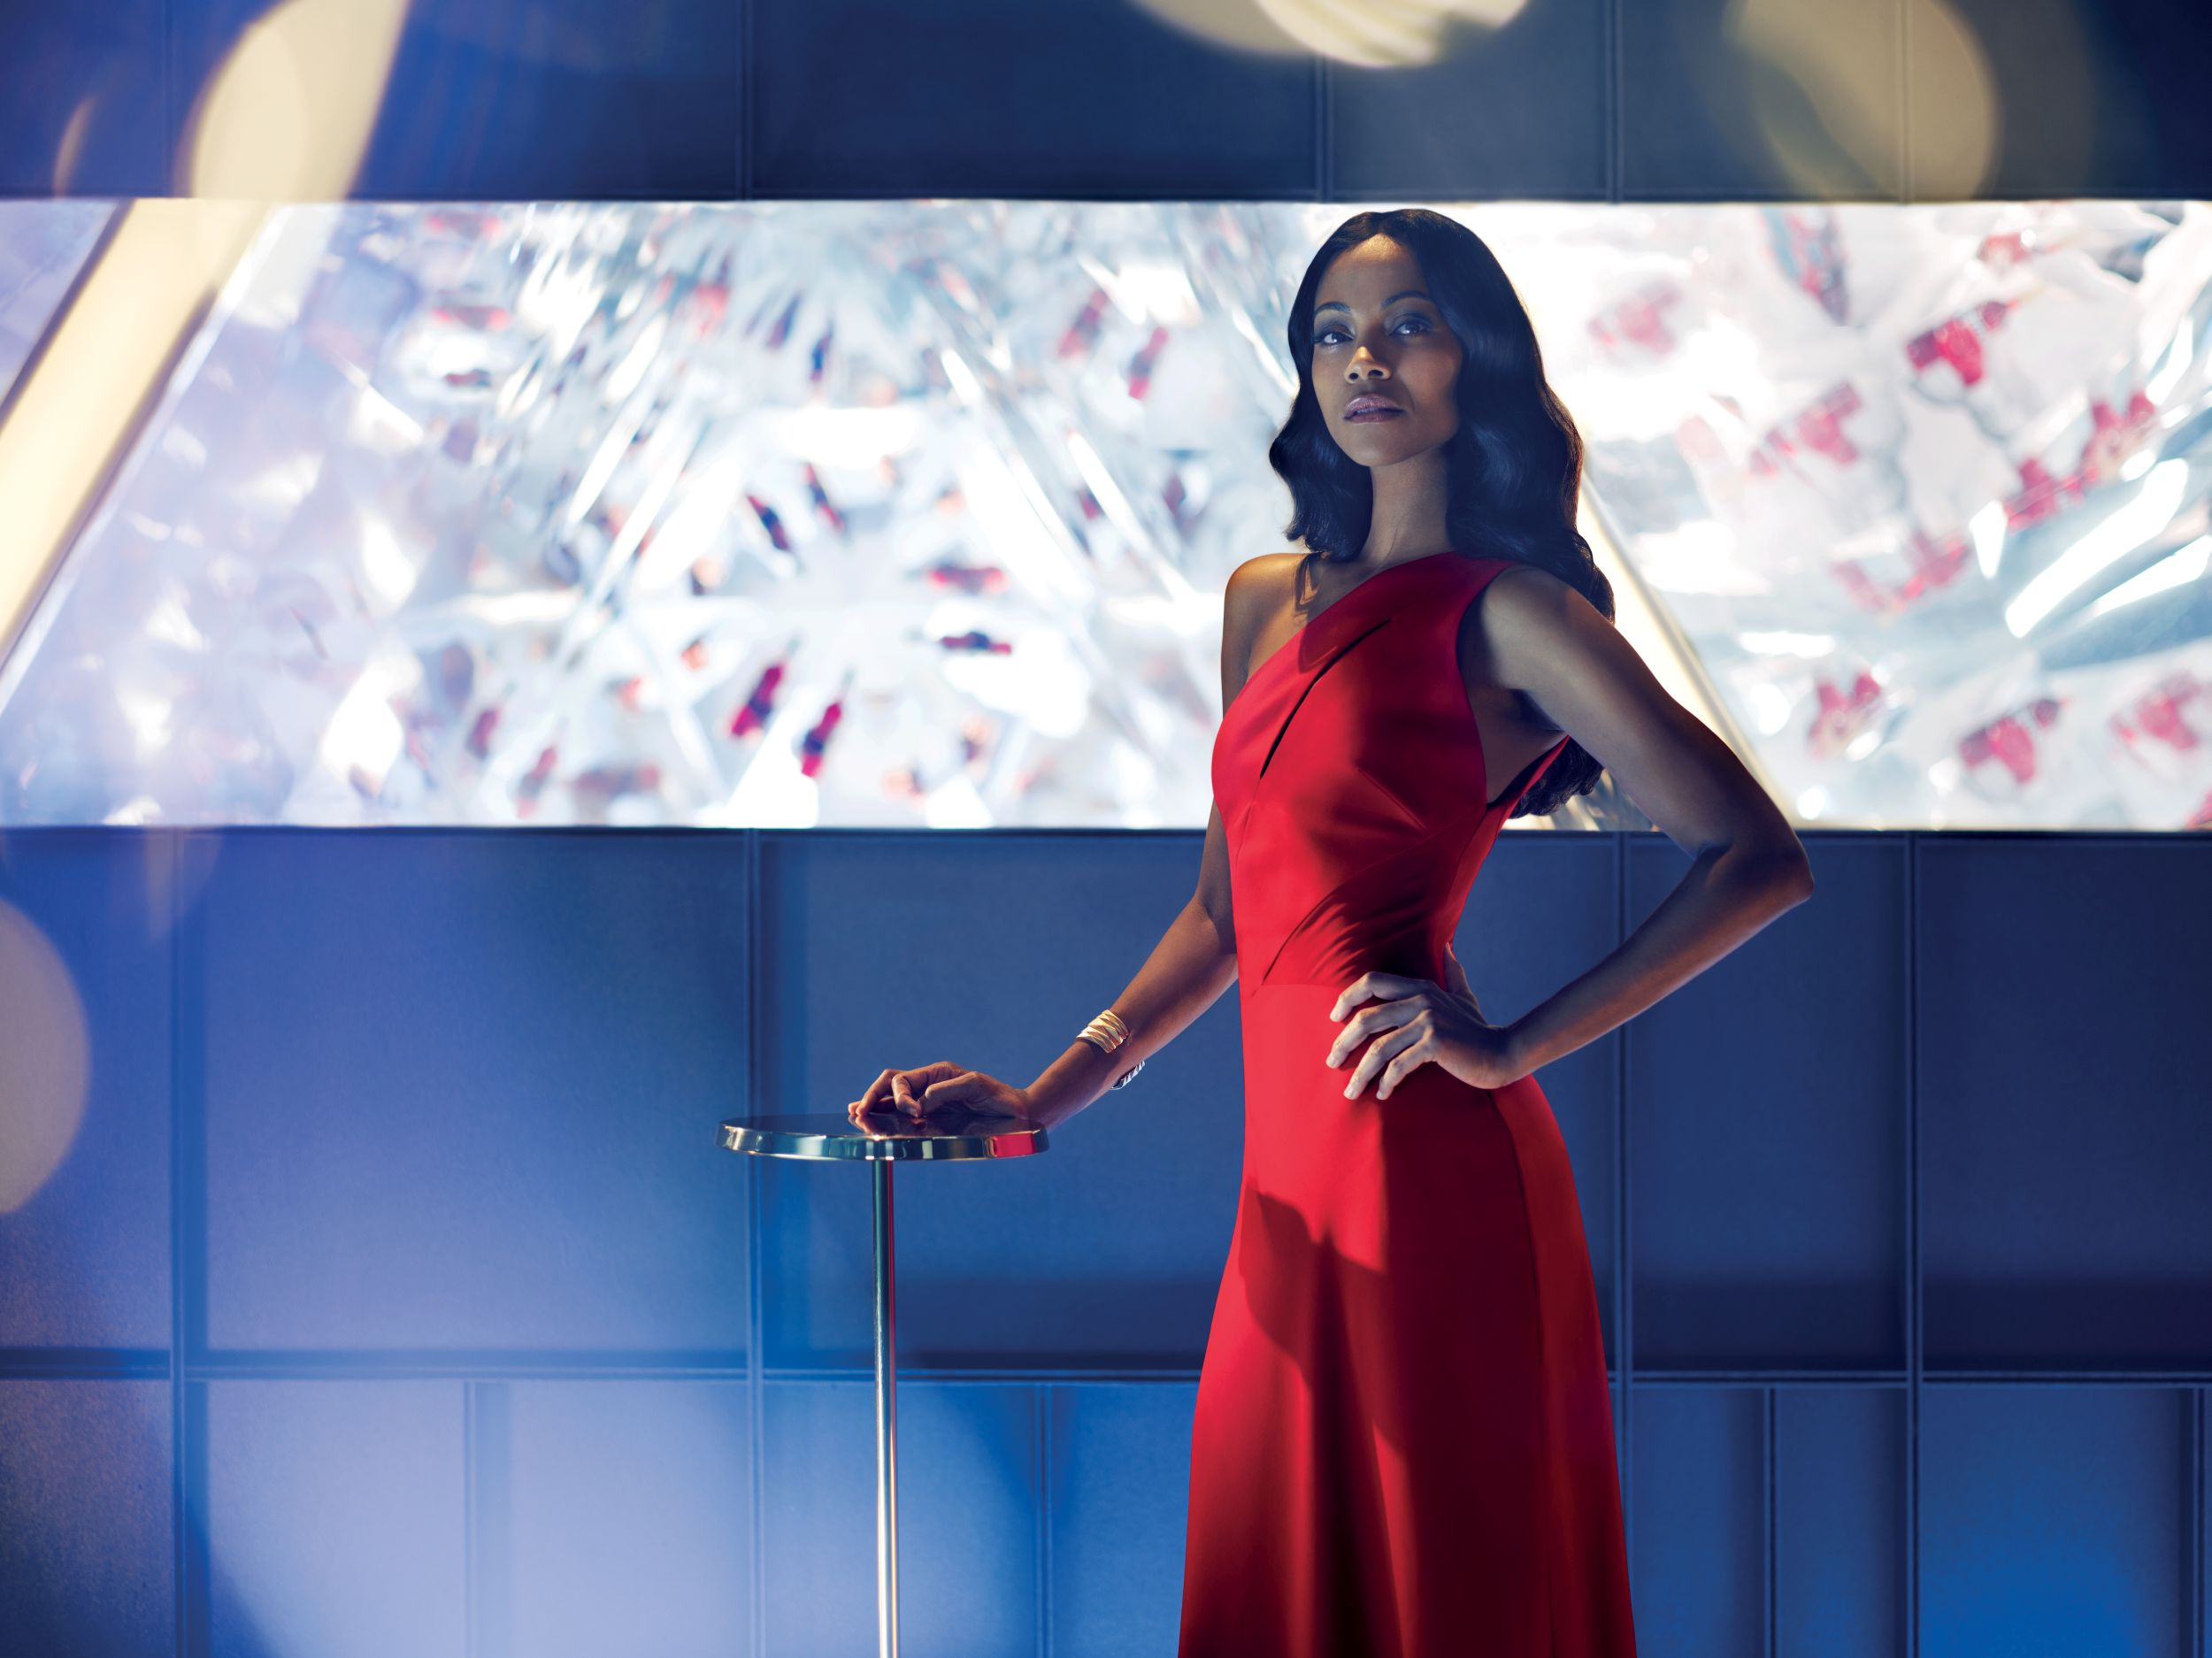 Lead protagonist Mia Parc, played by Zoe Saldana, in The Legend of Red Hand short movie for Campari